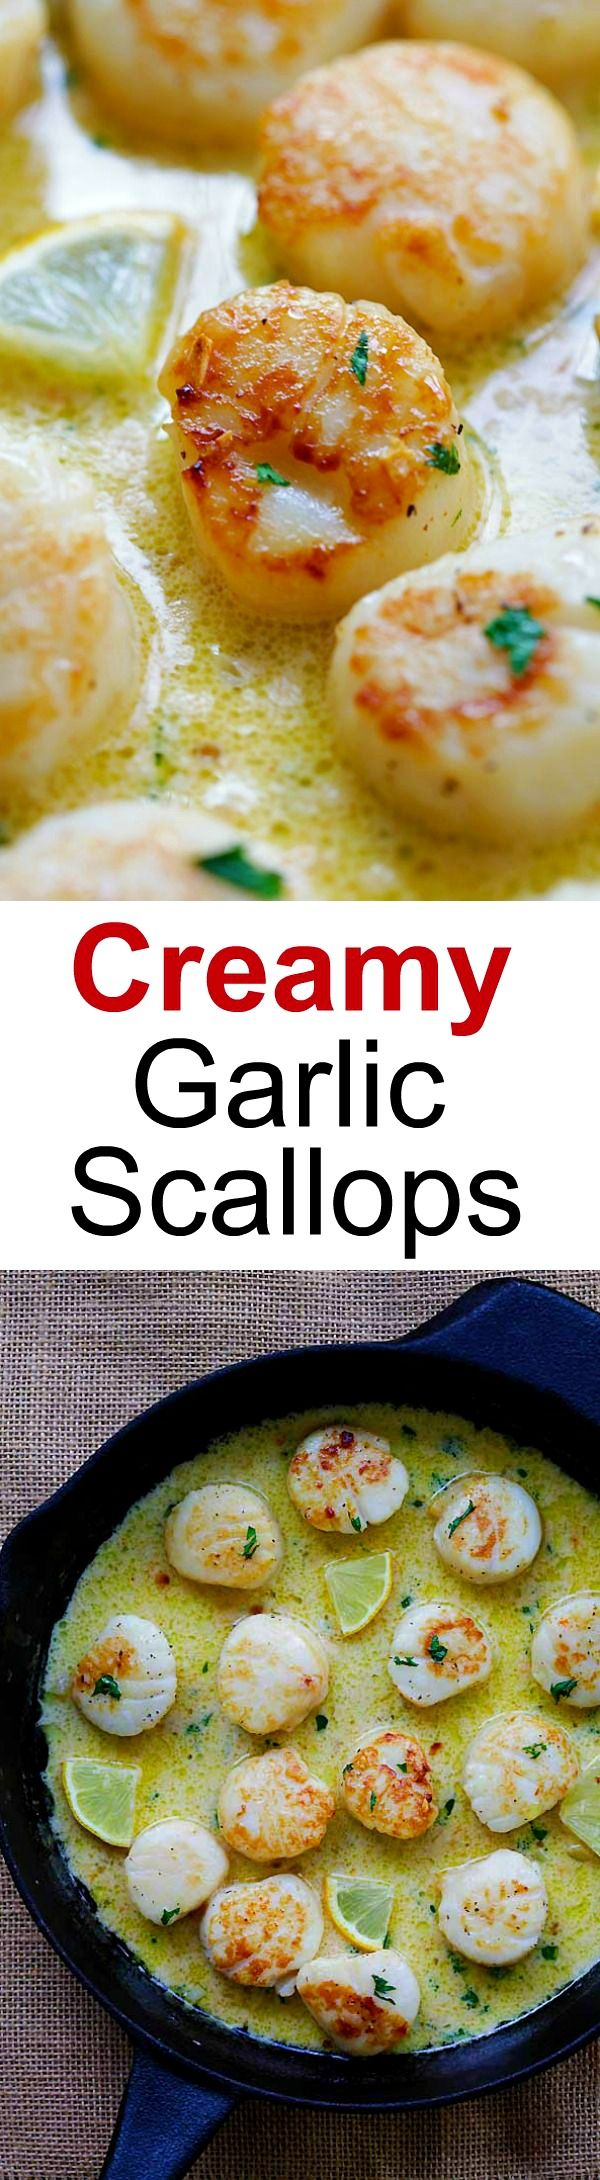 Creamy Garlic Scallops – easiest, creamiest and best scallop recipe ever. Takes only 15 mins, better than restaurants and much cheaper | rasamalaysia.com